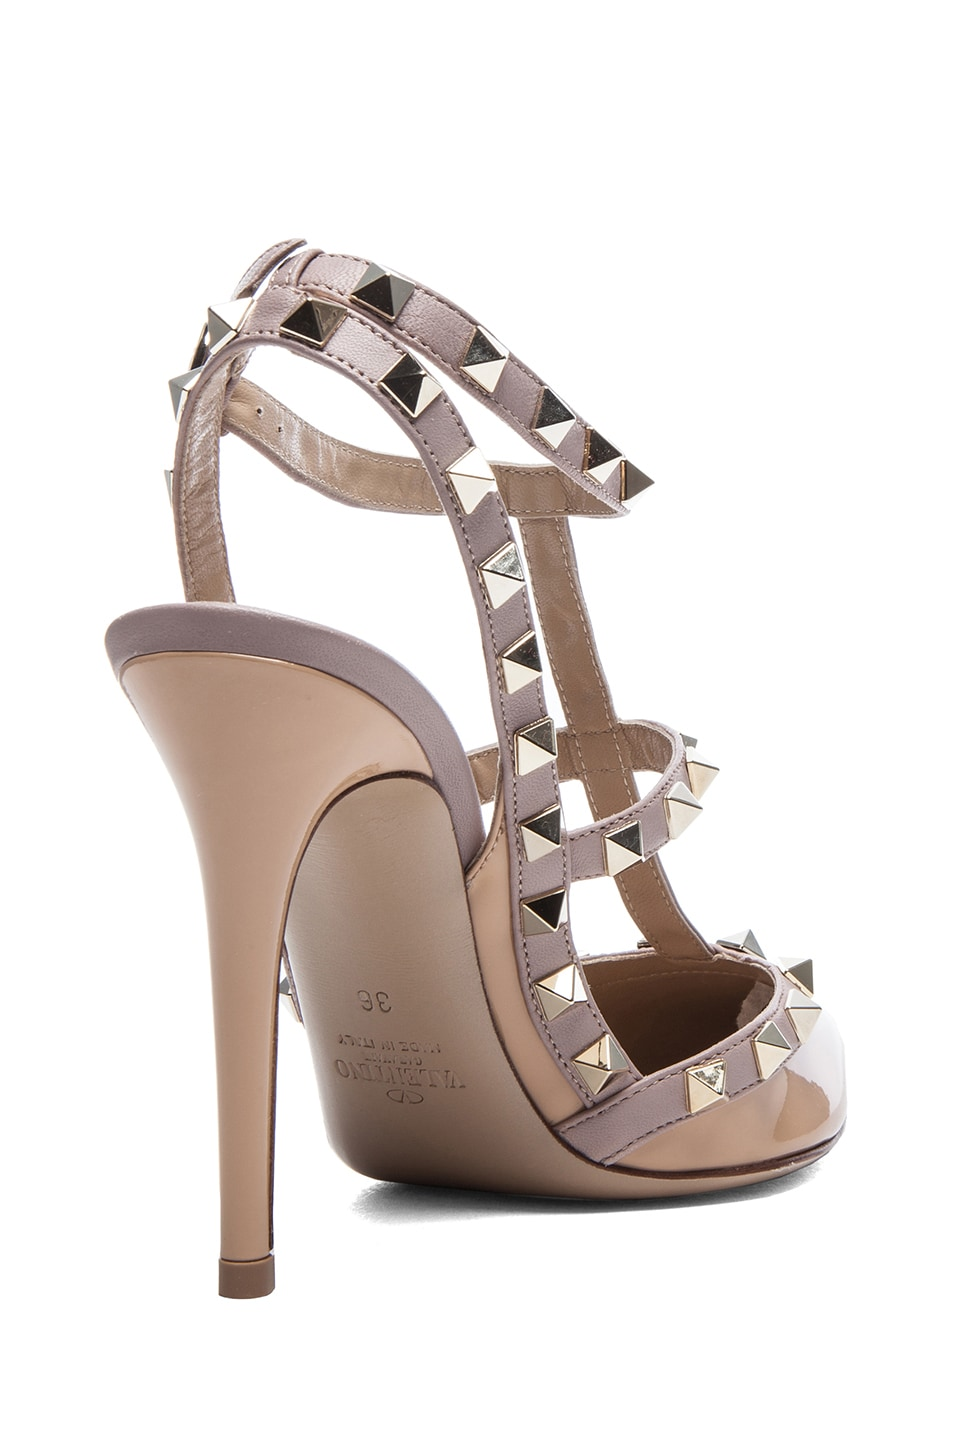 Image 3 of Valentino Rockstud Patent Slingbacks T.100 in Vicuna